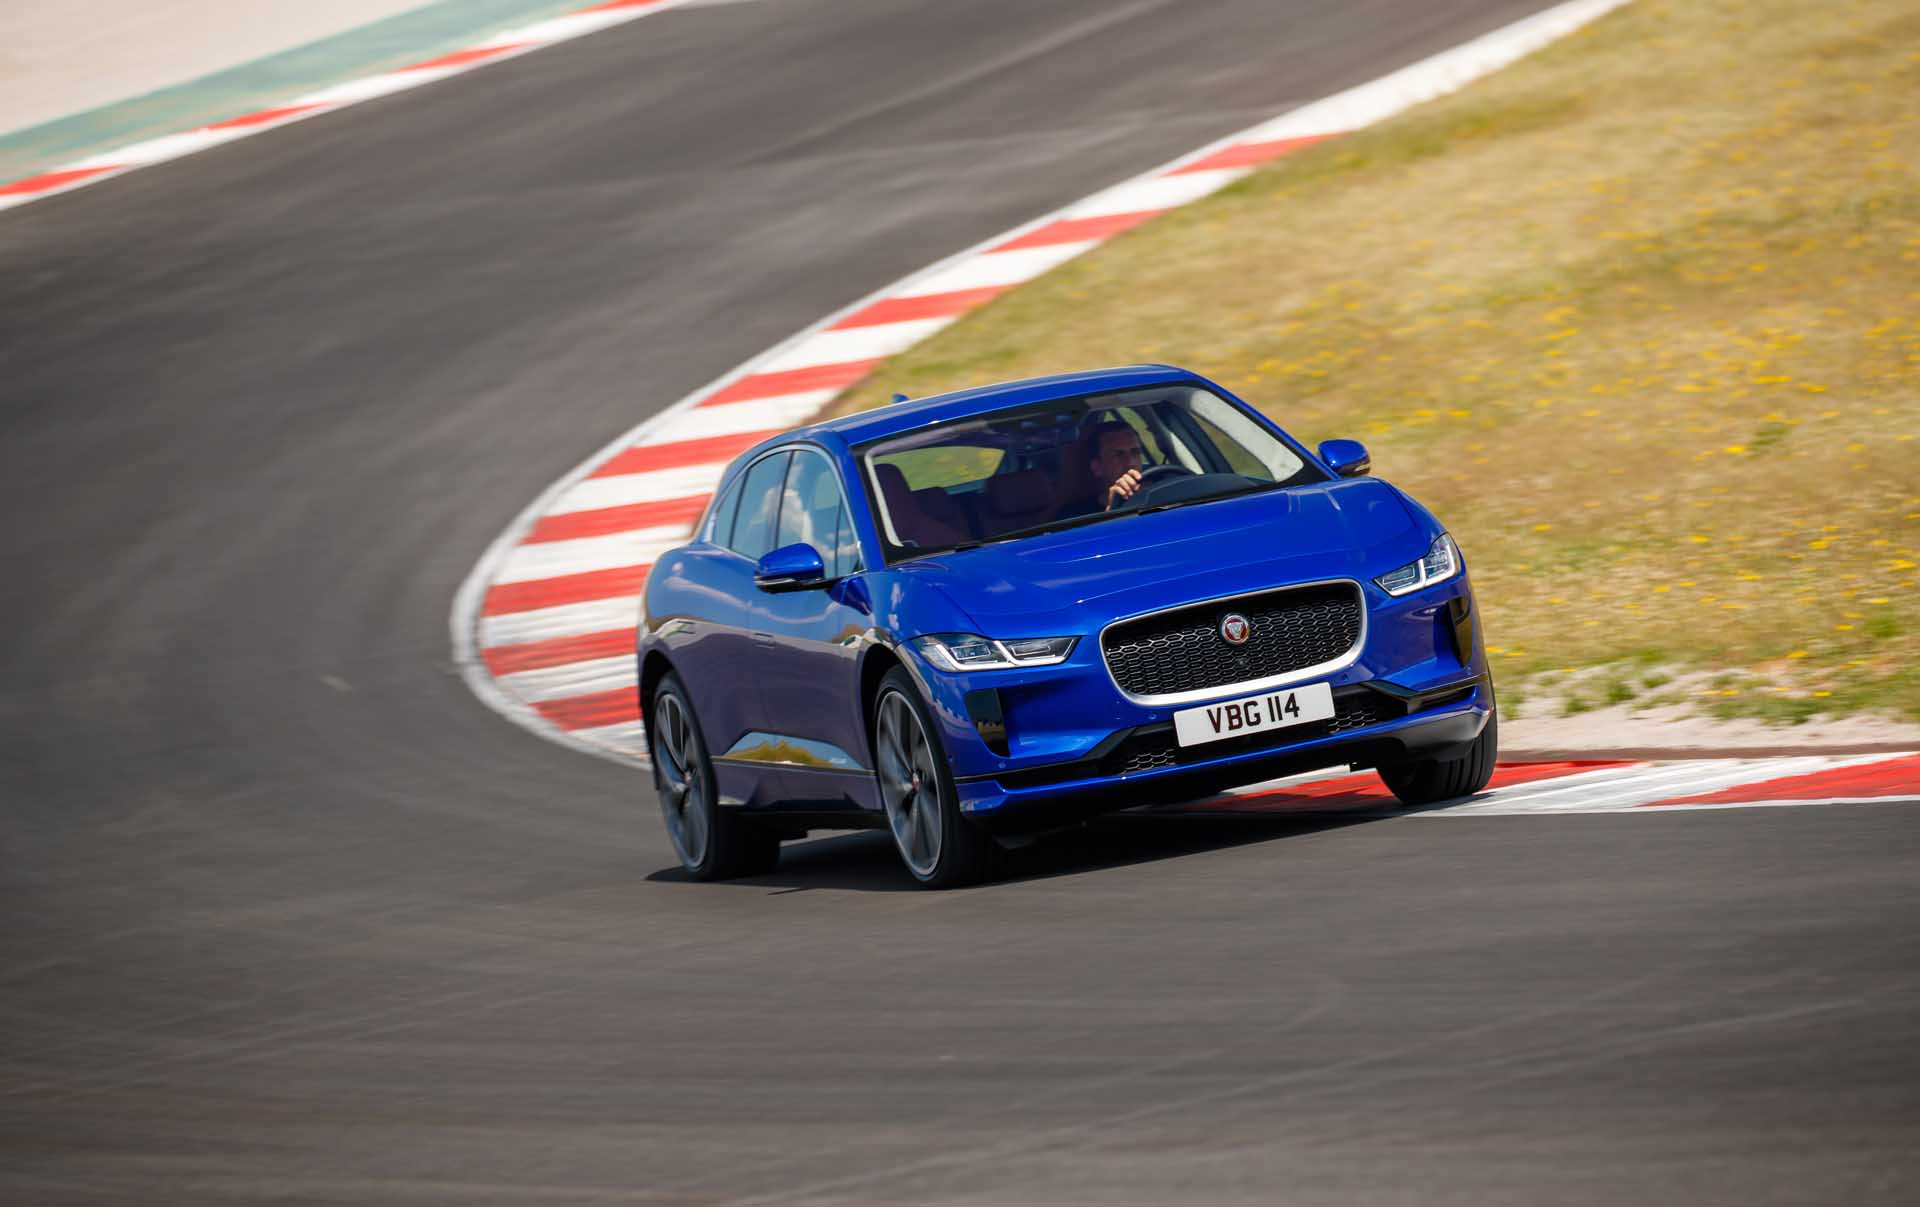 Jaguar: I-Pace electric SUV has already been improved from racing and over-the-air updates